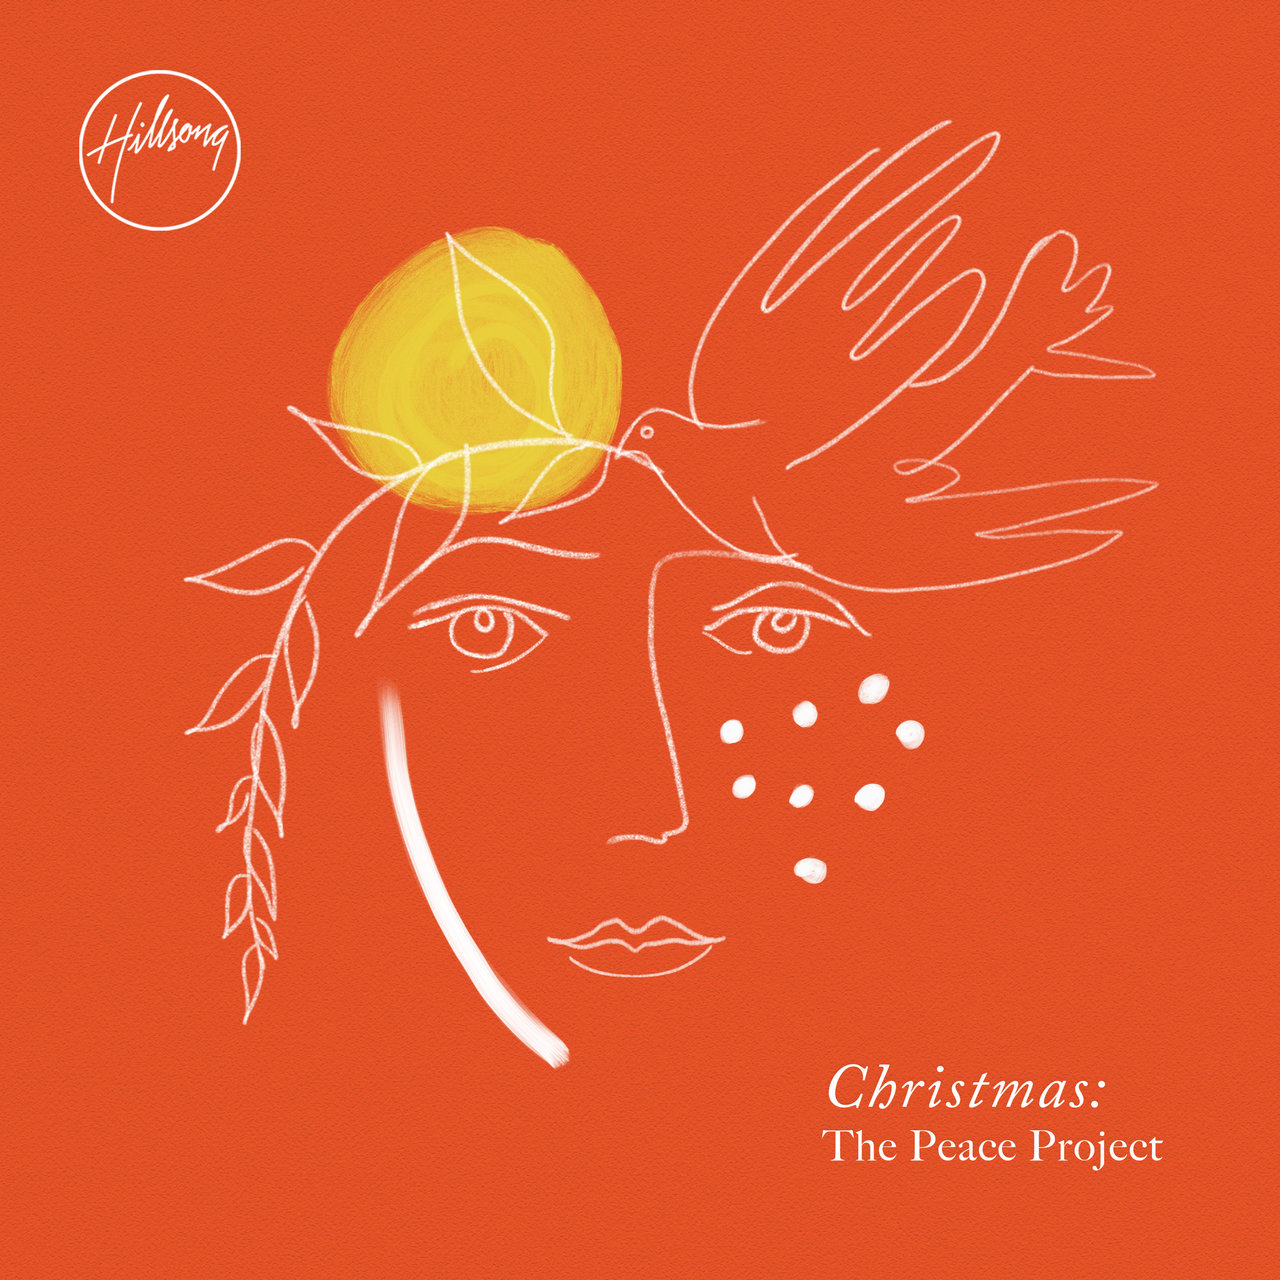 Hillsong Worship - Christmas: The Peace Project 2018 English